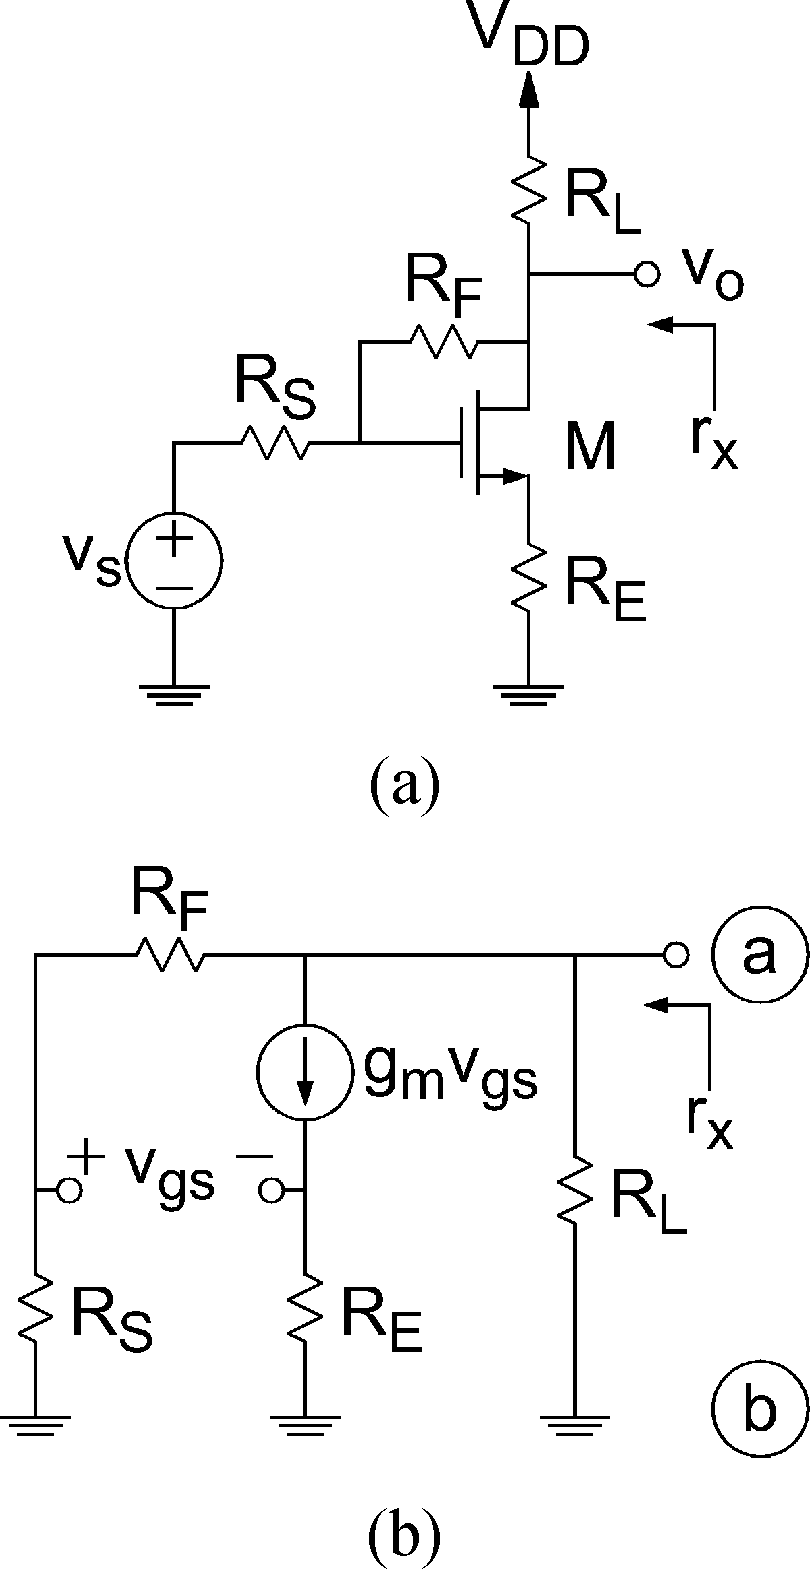 hight resolution of feedback amplifier example a transistor level model b small